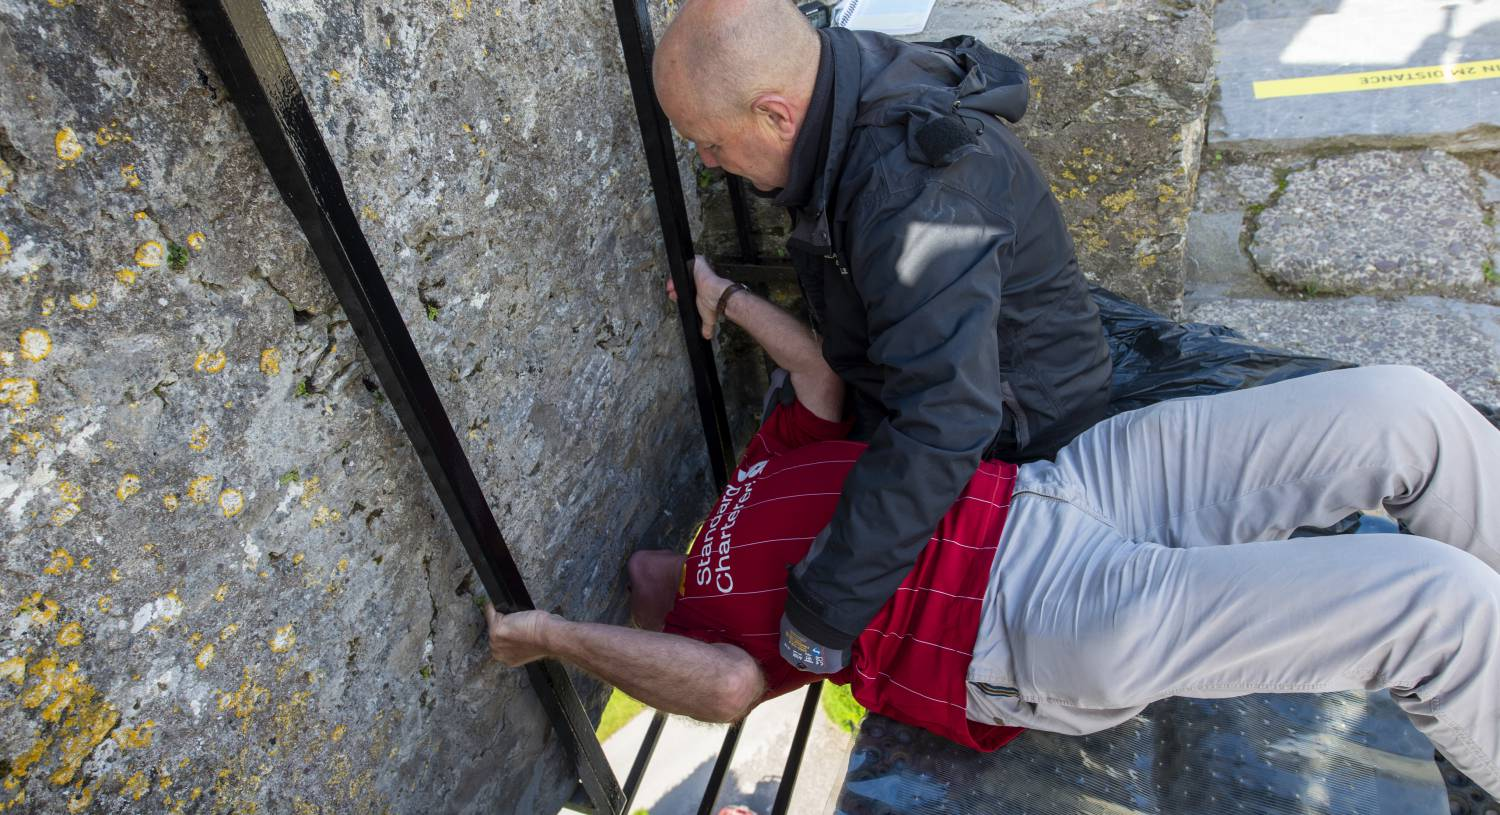 Sanitation station: No hassle at Blarney Castle as world-famous attraction reopens